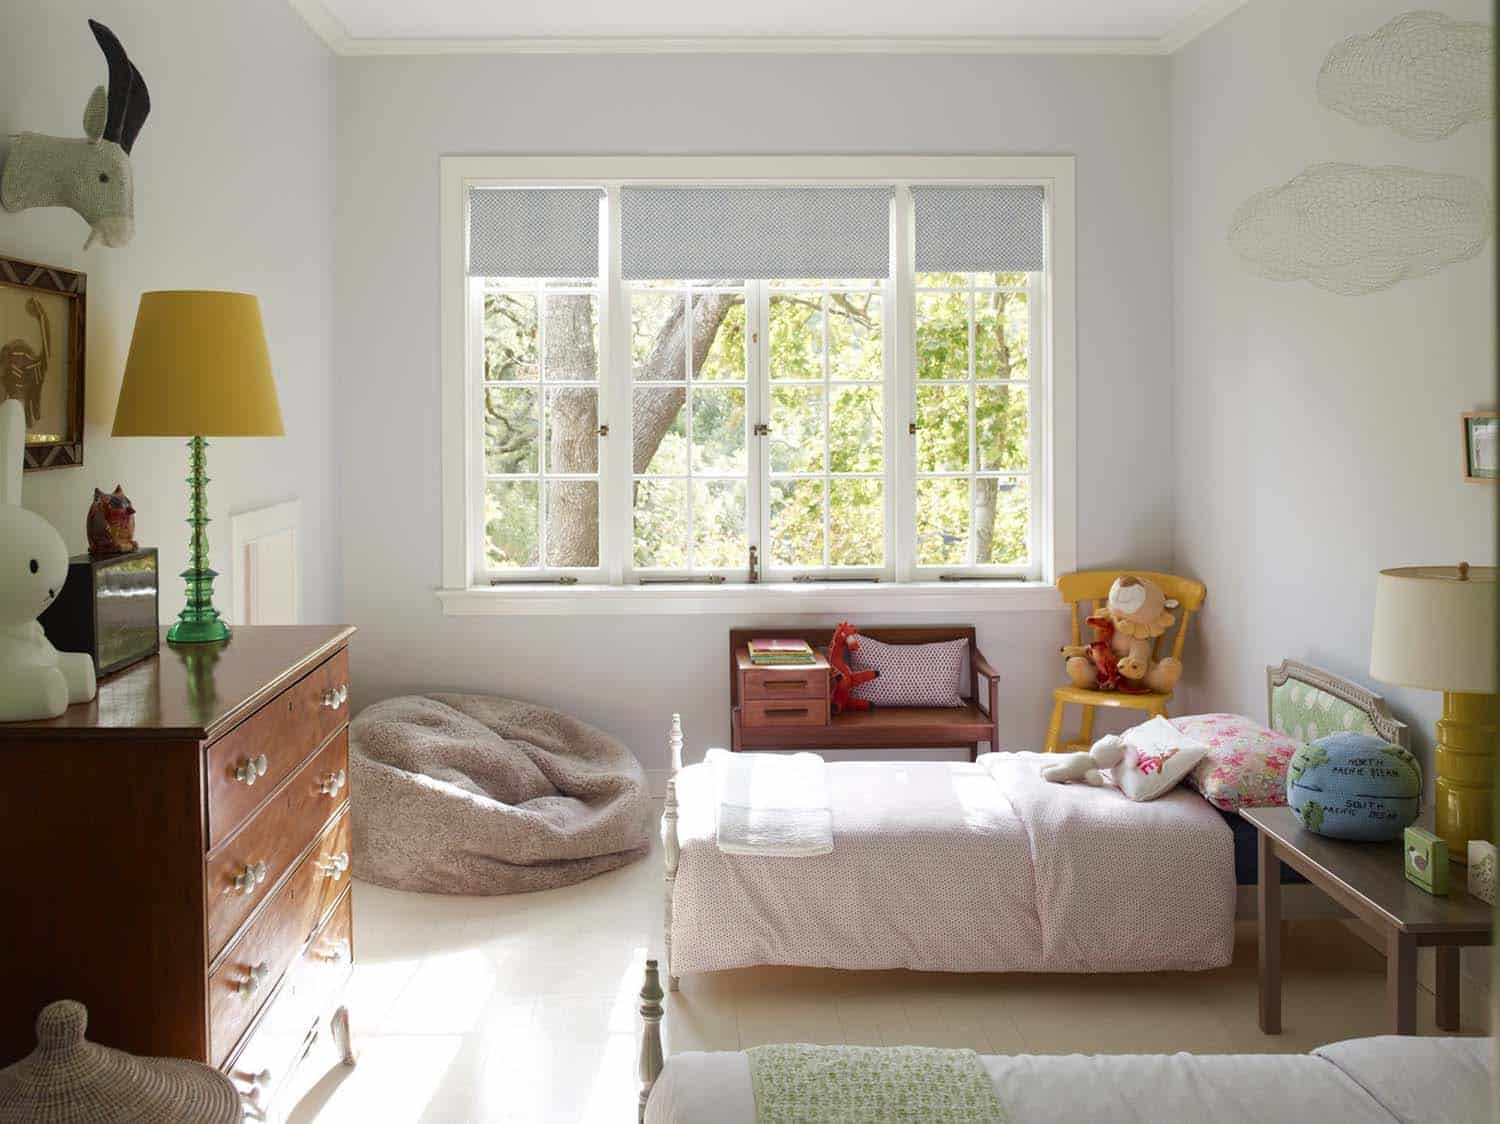 countryside-home-kids-bedroom